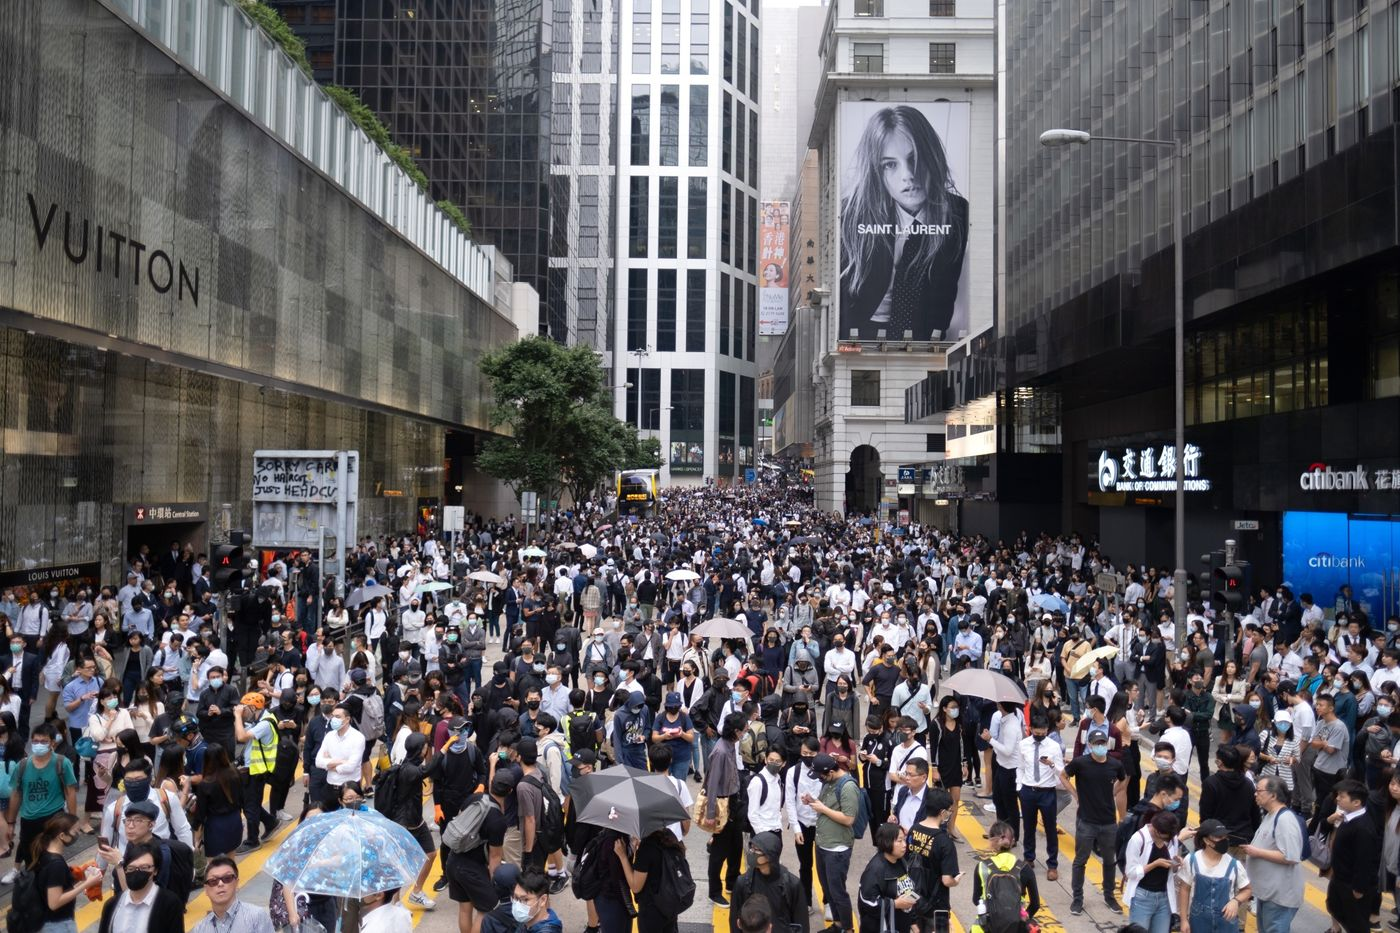 People gather during a protest in the Central district of Hong Kong on Nov. 12.